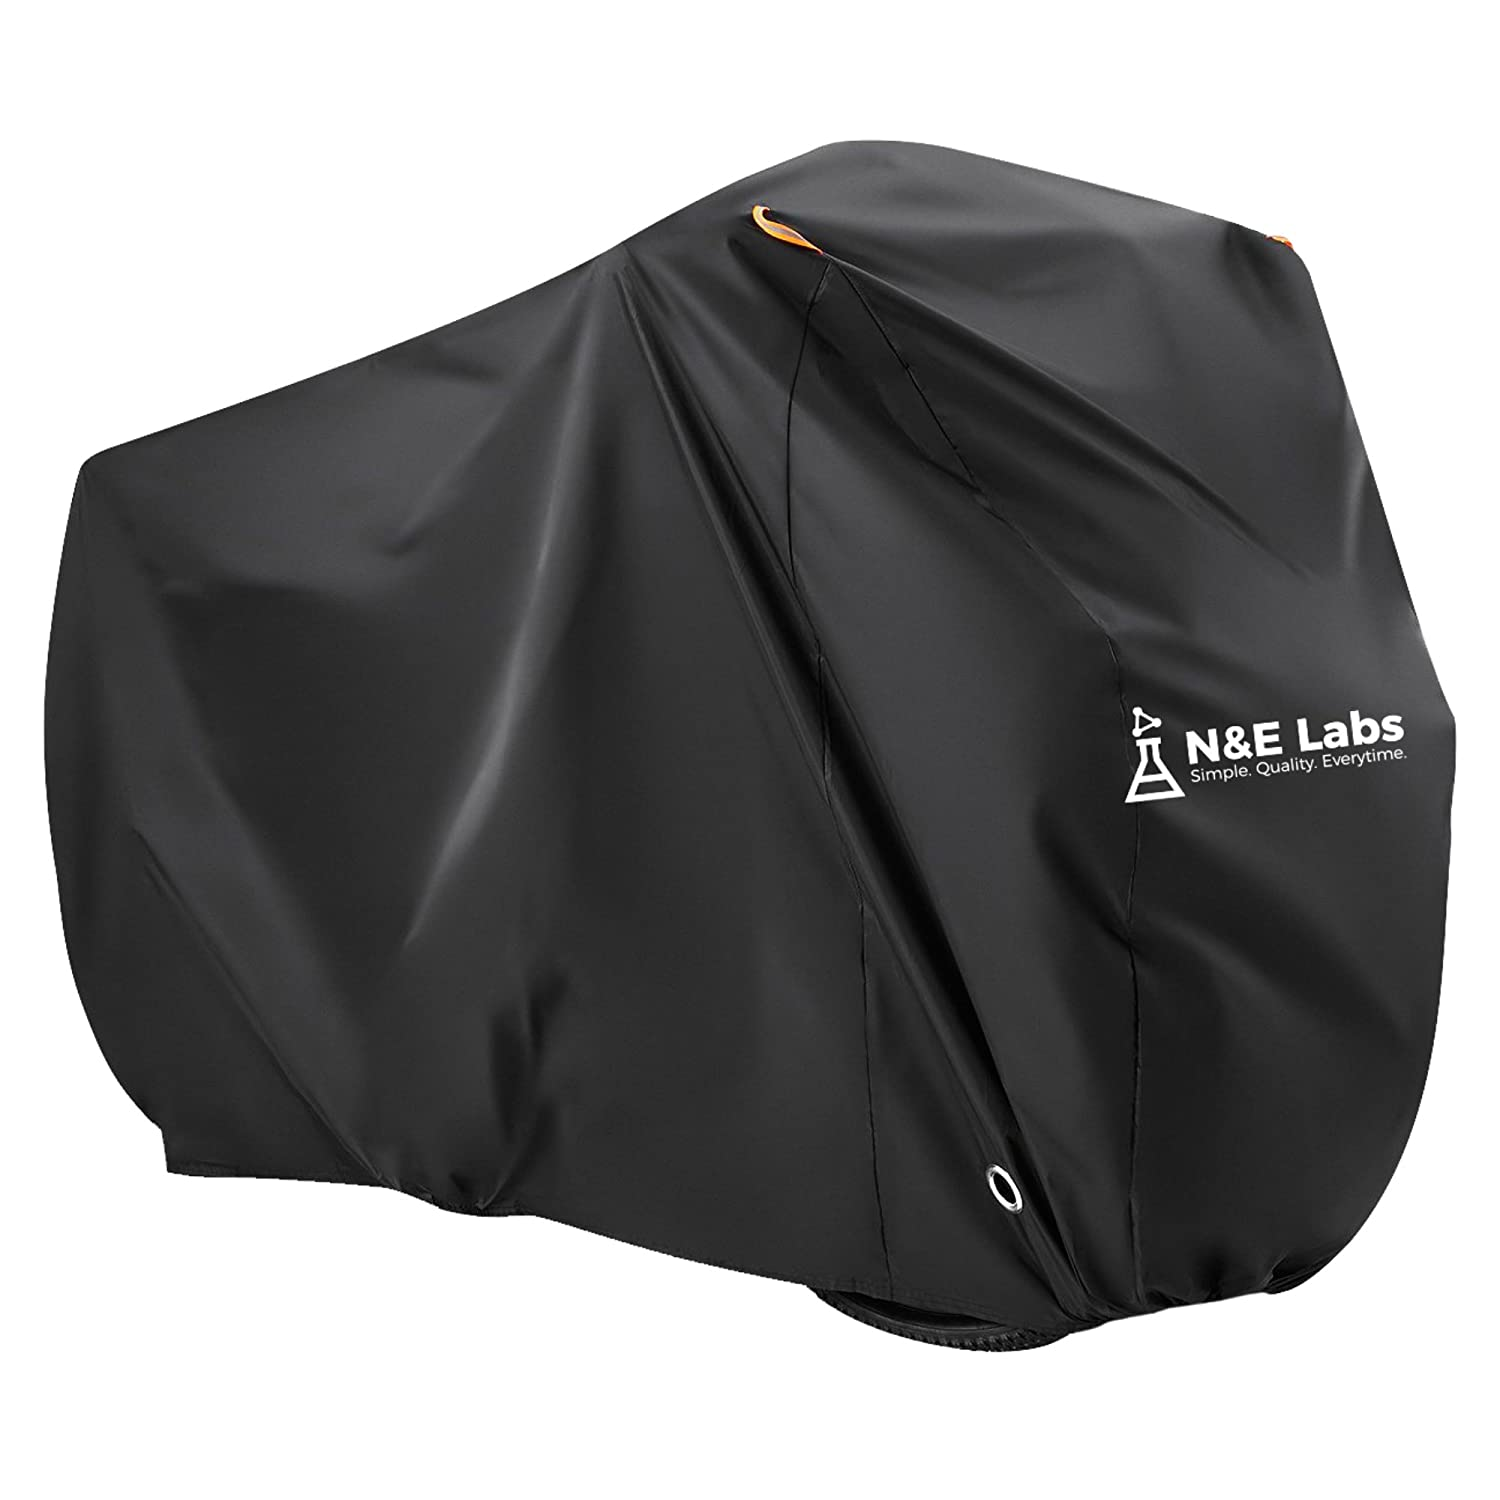 Amazon.com : Bike Cover Waterproof Outdoor Bicycle Storage for 2 ...